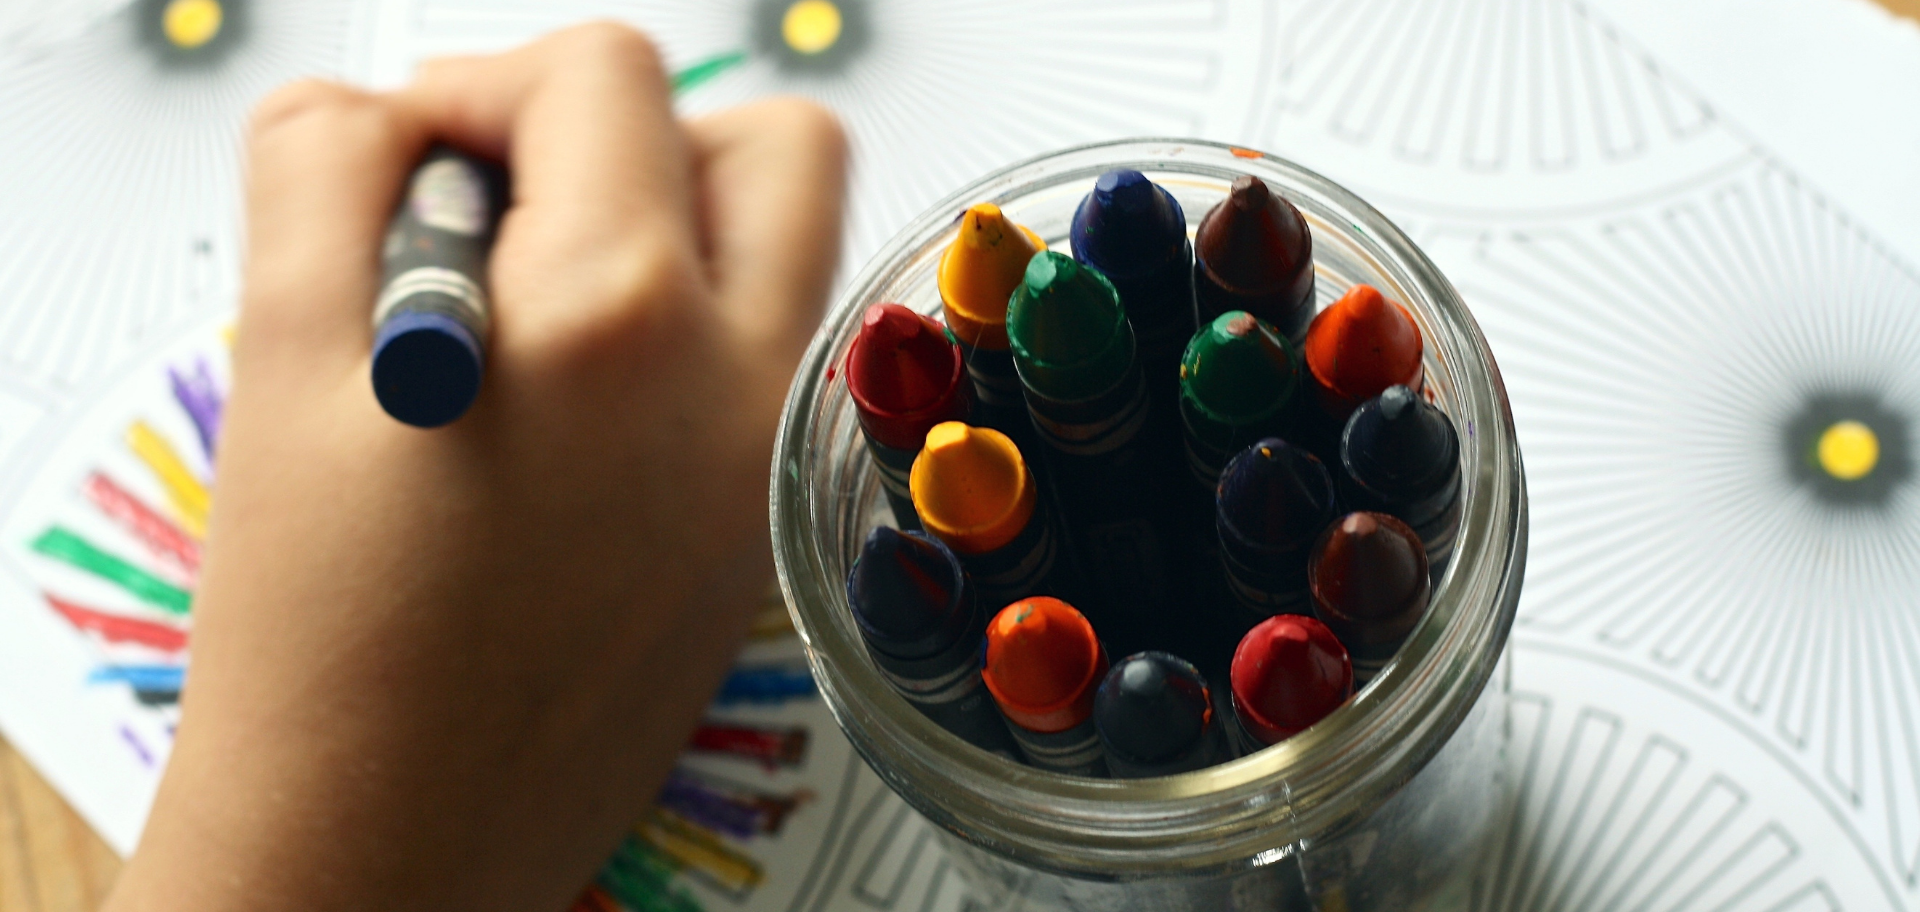 childs hand with jar of crayons